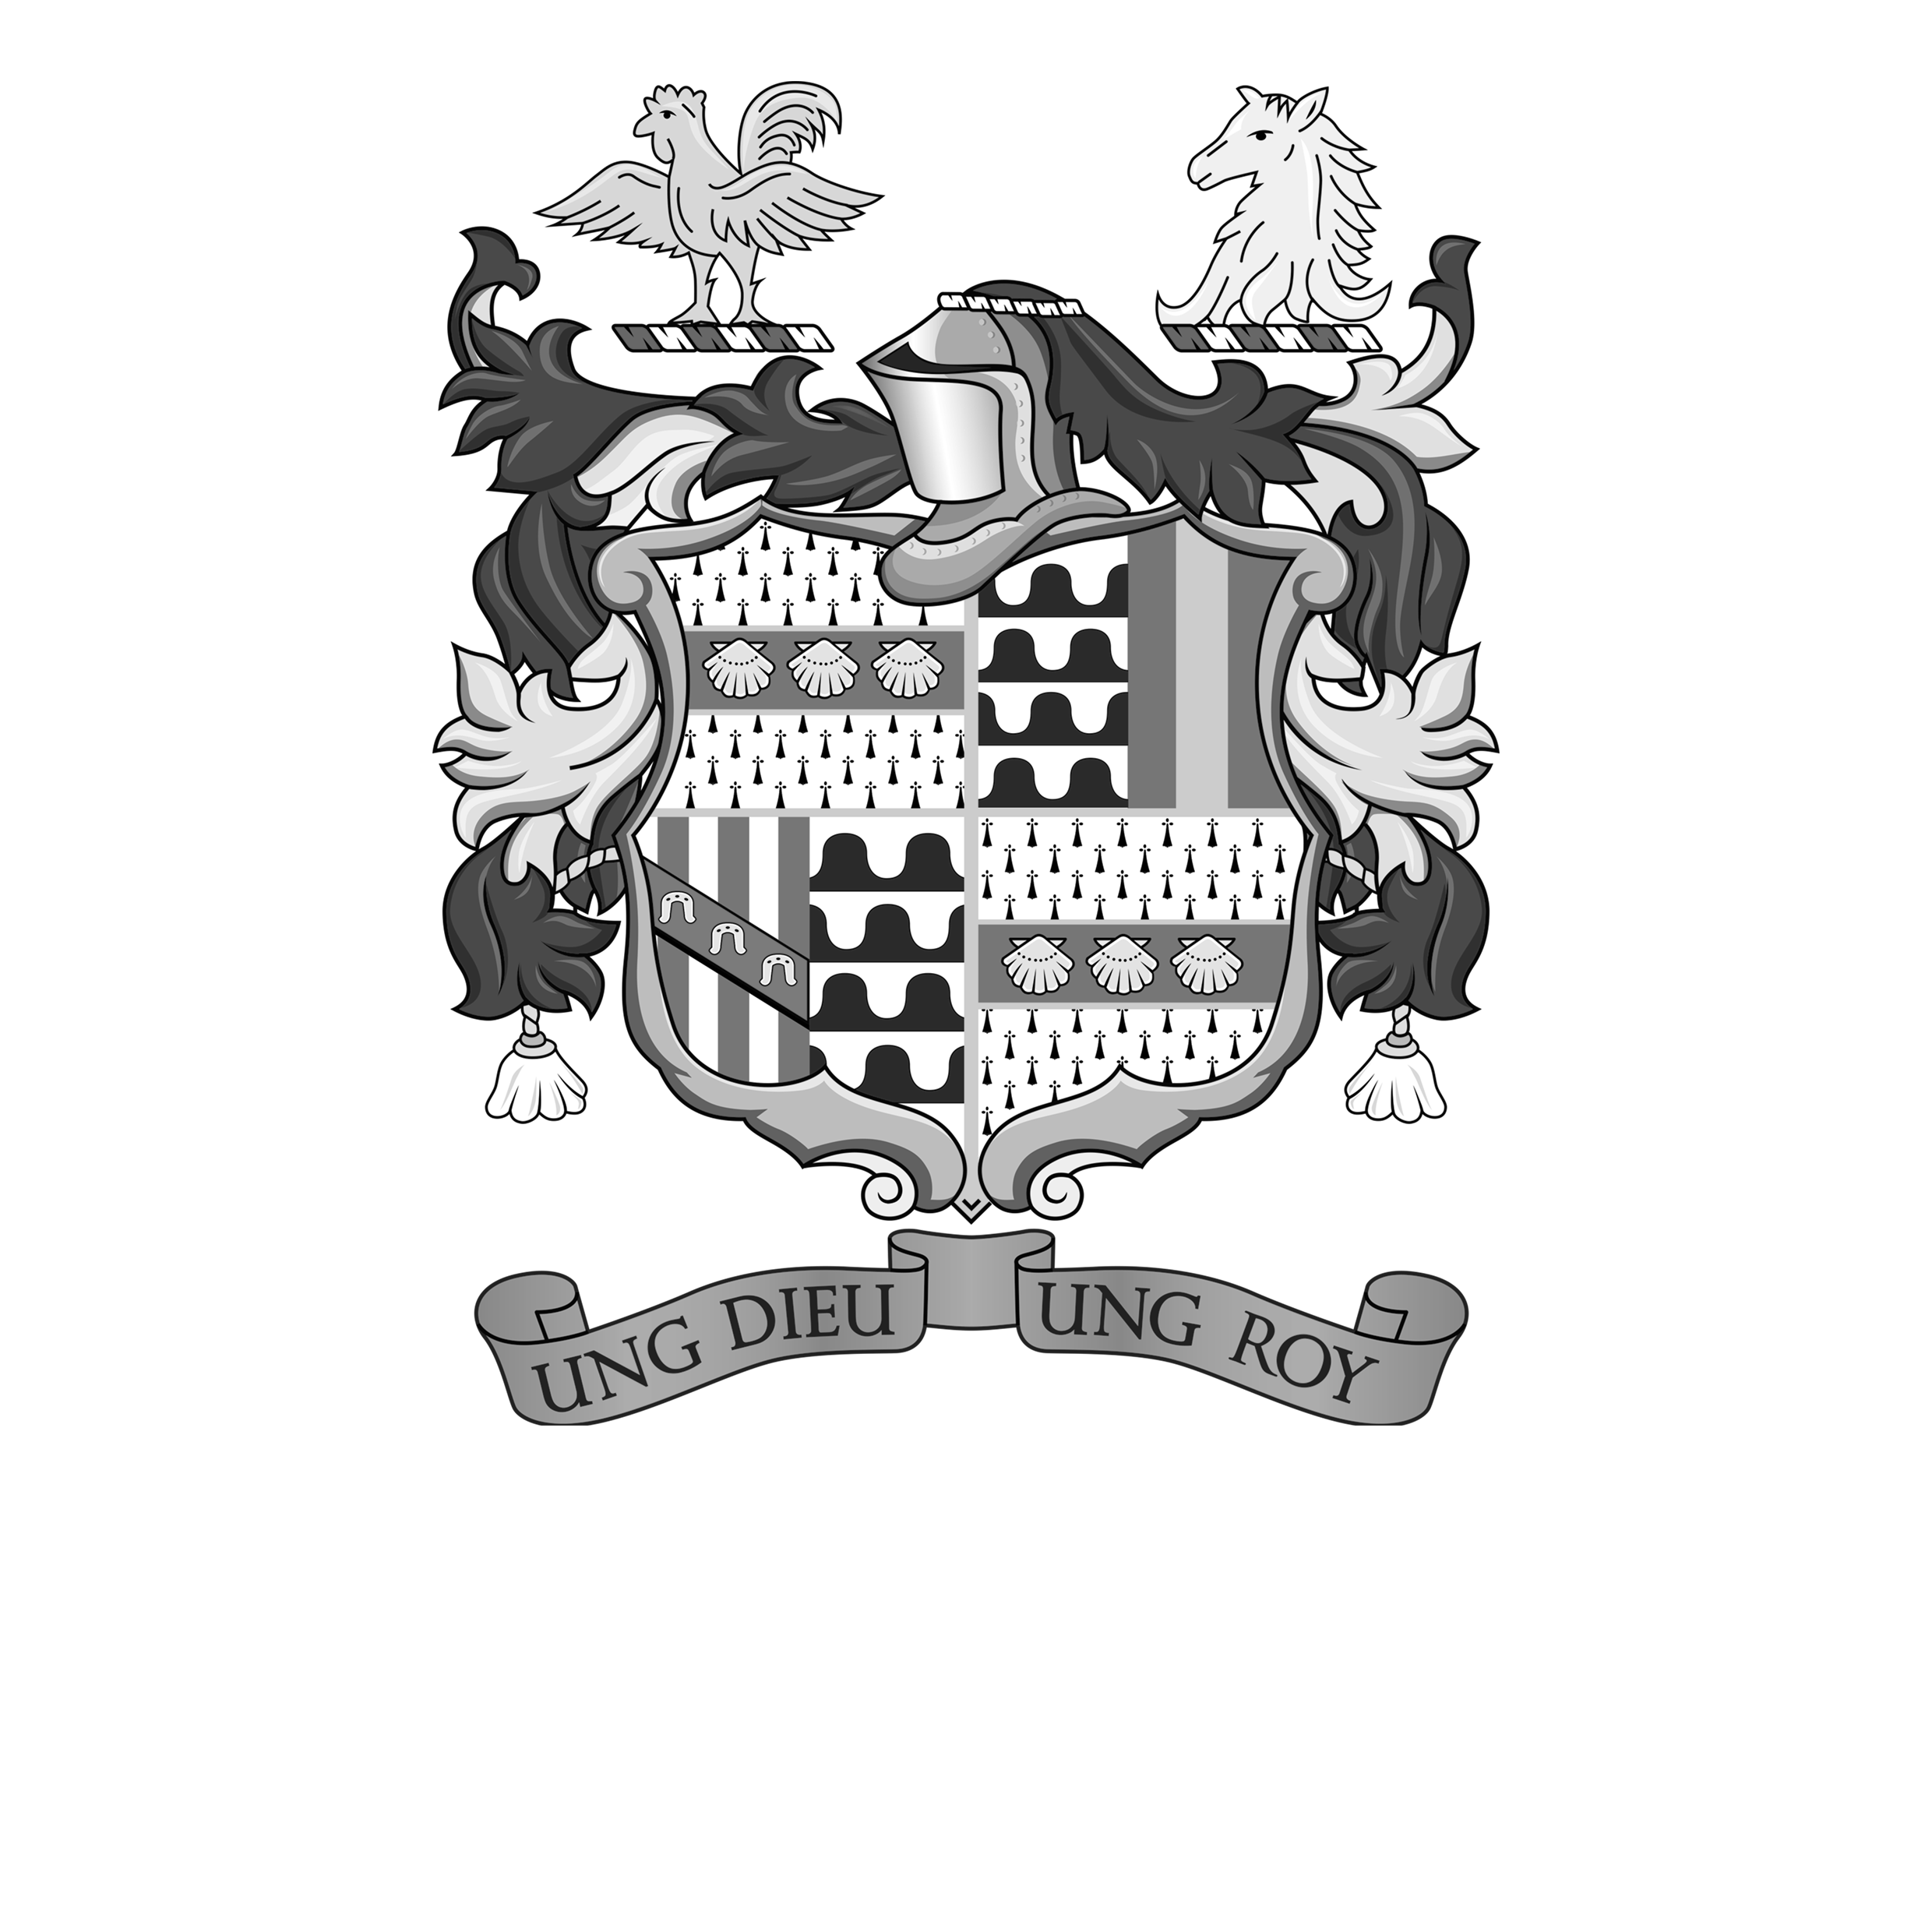 The Meynell Ingram Arms